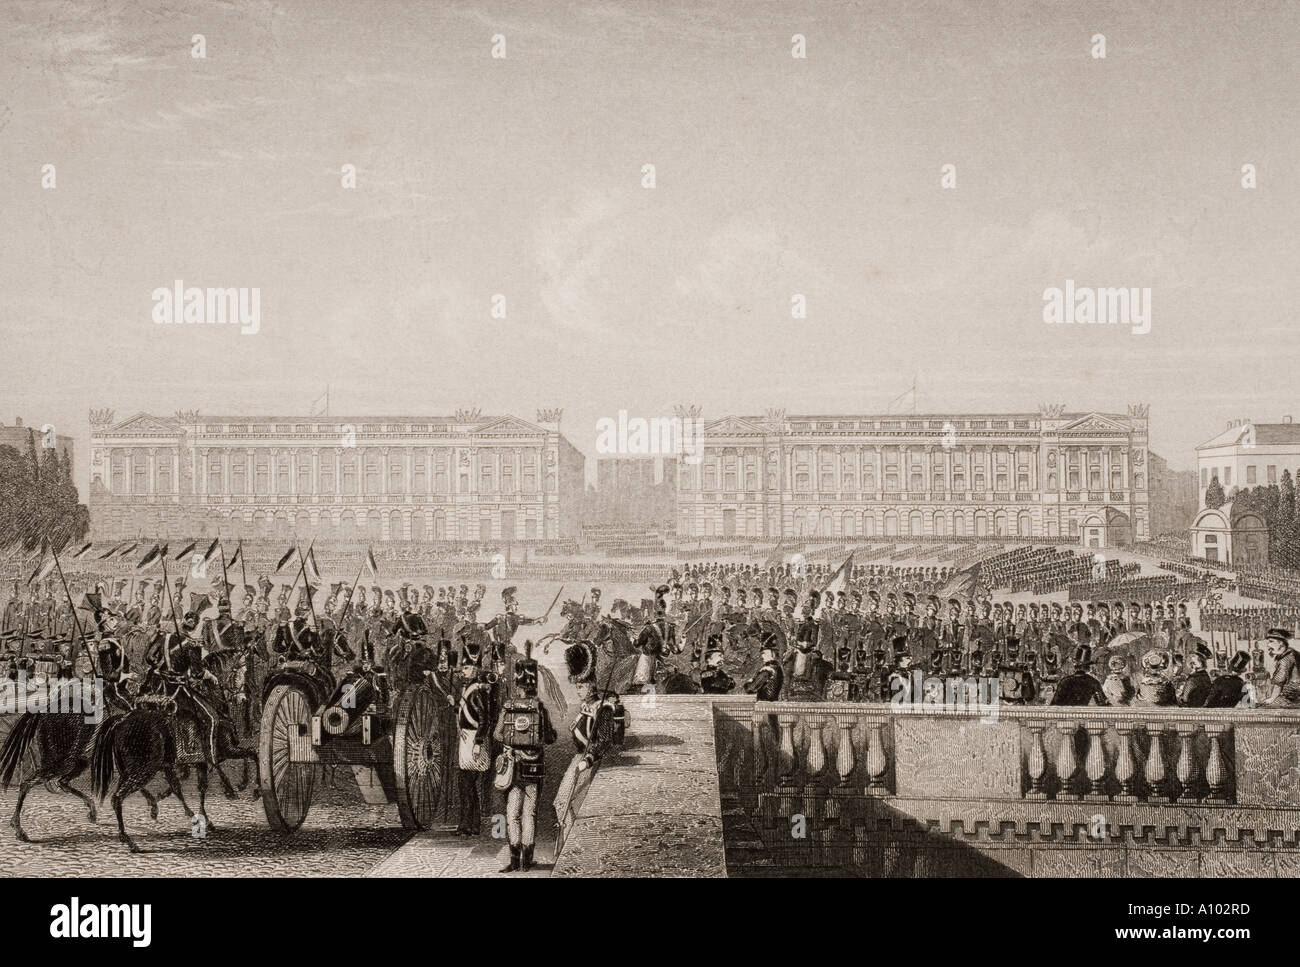 Entry of the allies into Paris 1815 - Stock Image